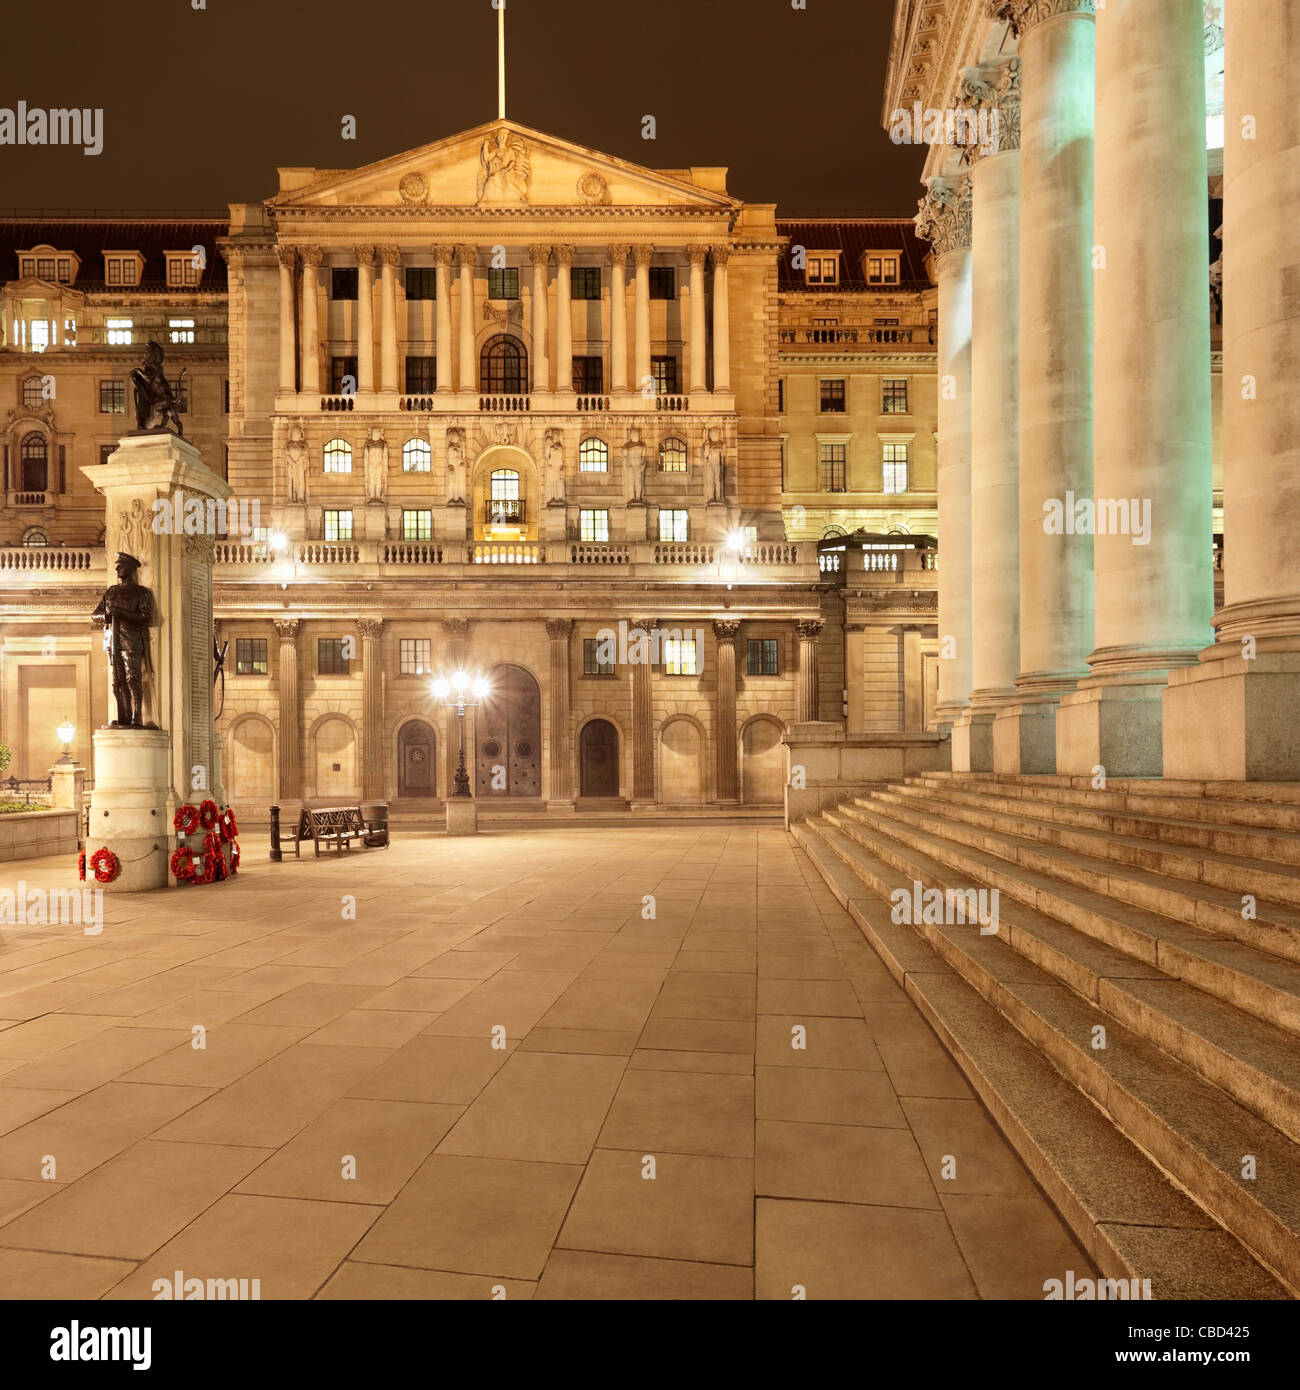 Banque d'Angleterre lit up at night Photo Stock